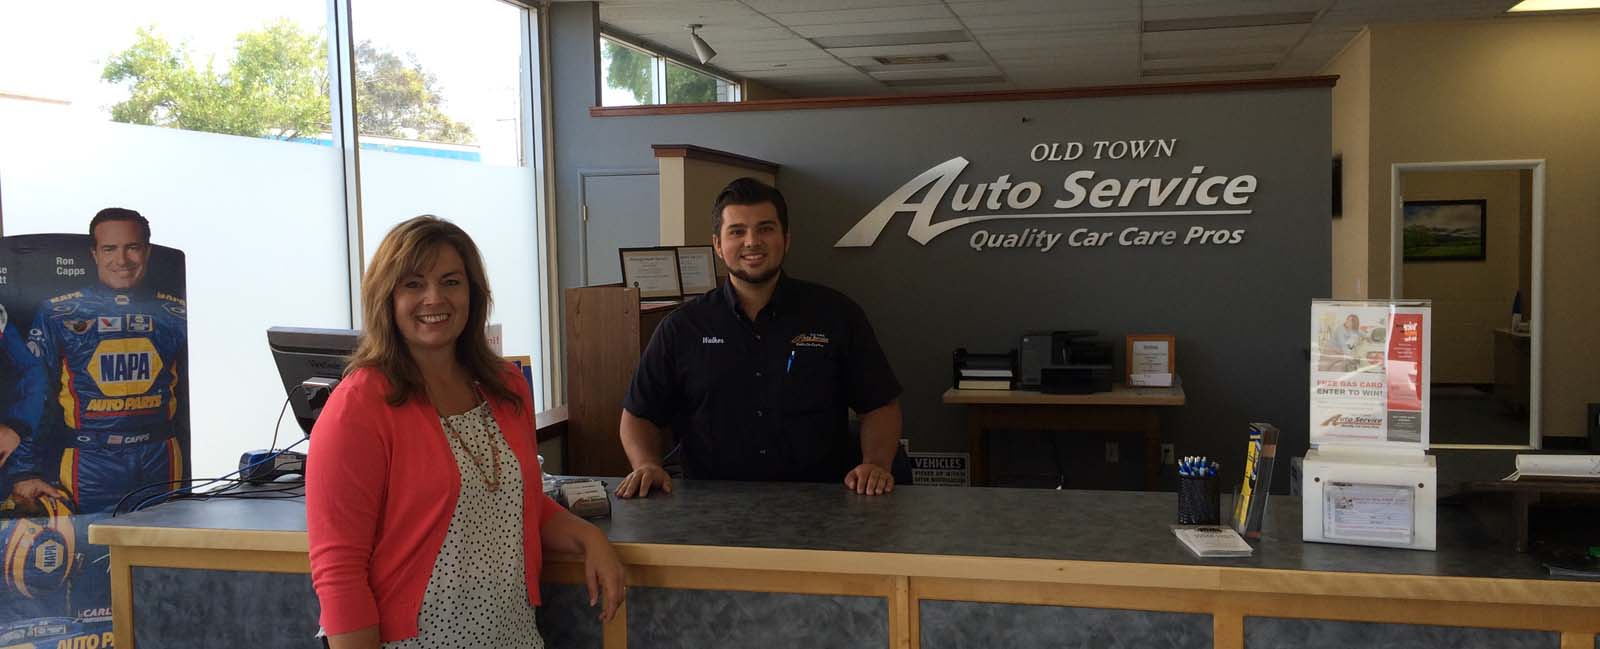 Old Town Auto Service, quality auto repair shop in Eureka CA